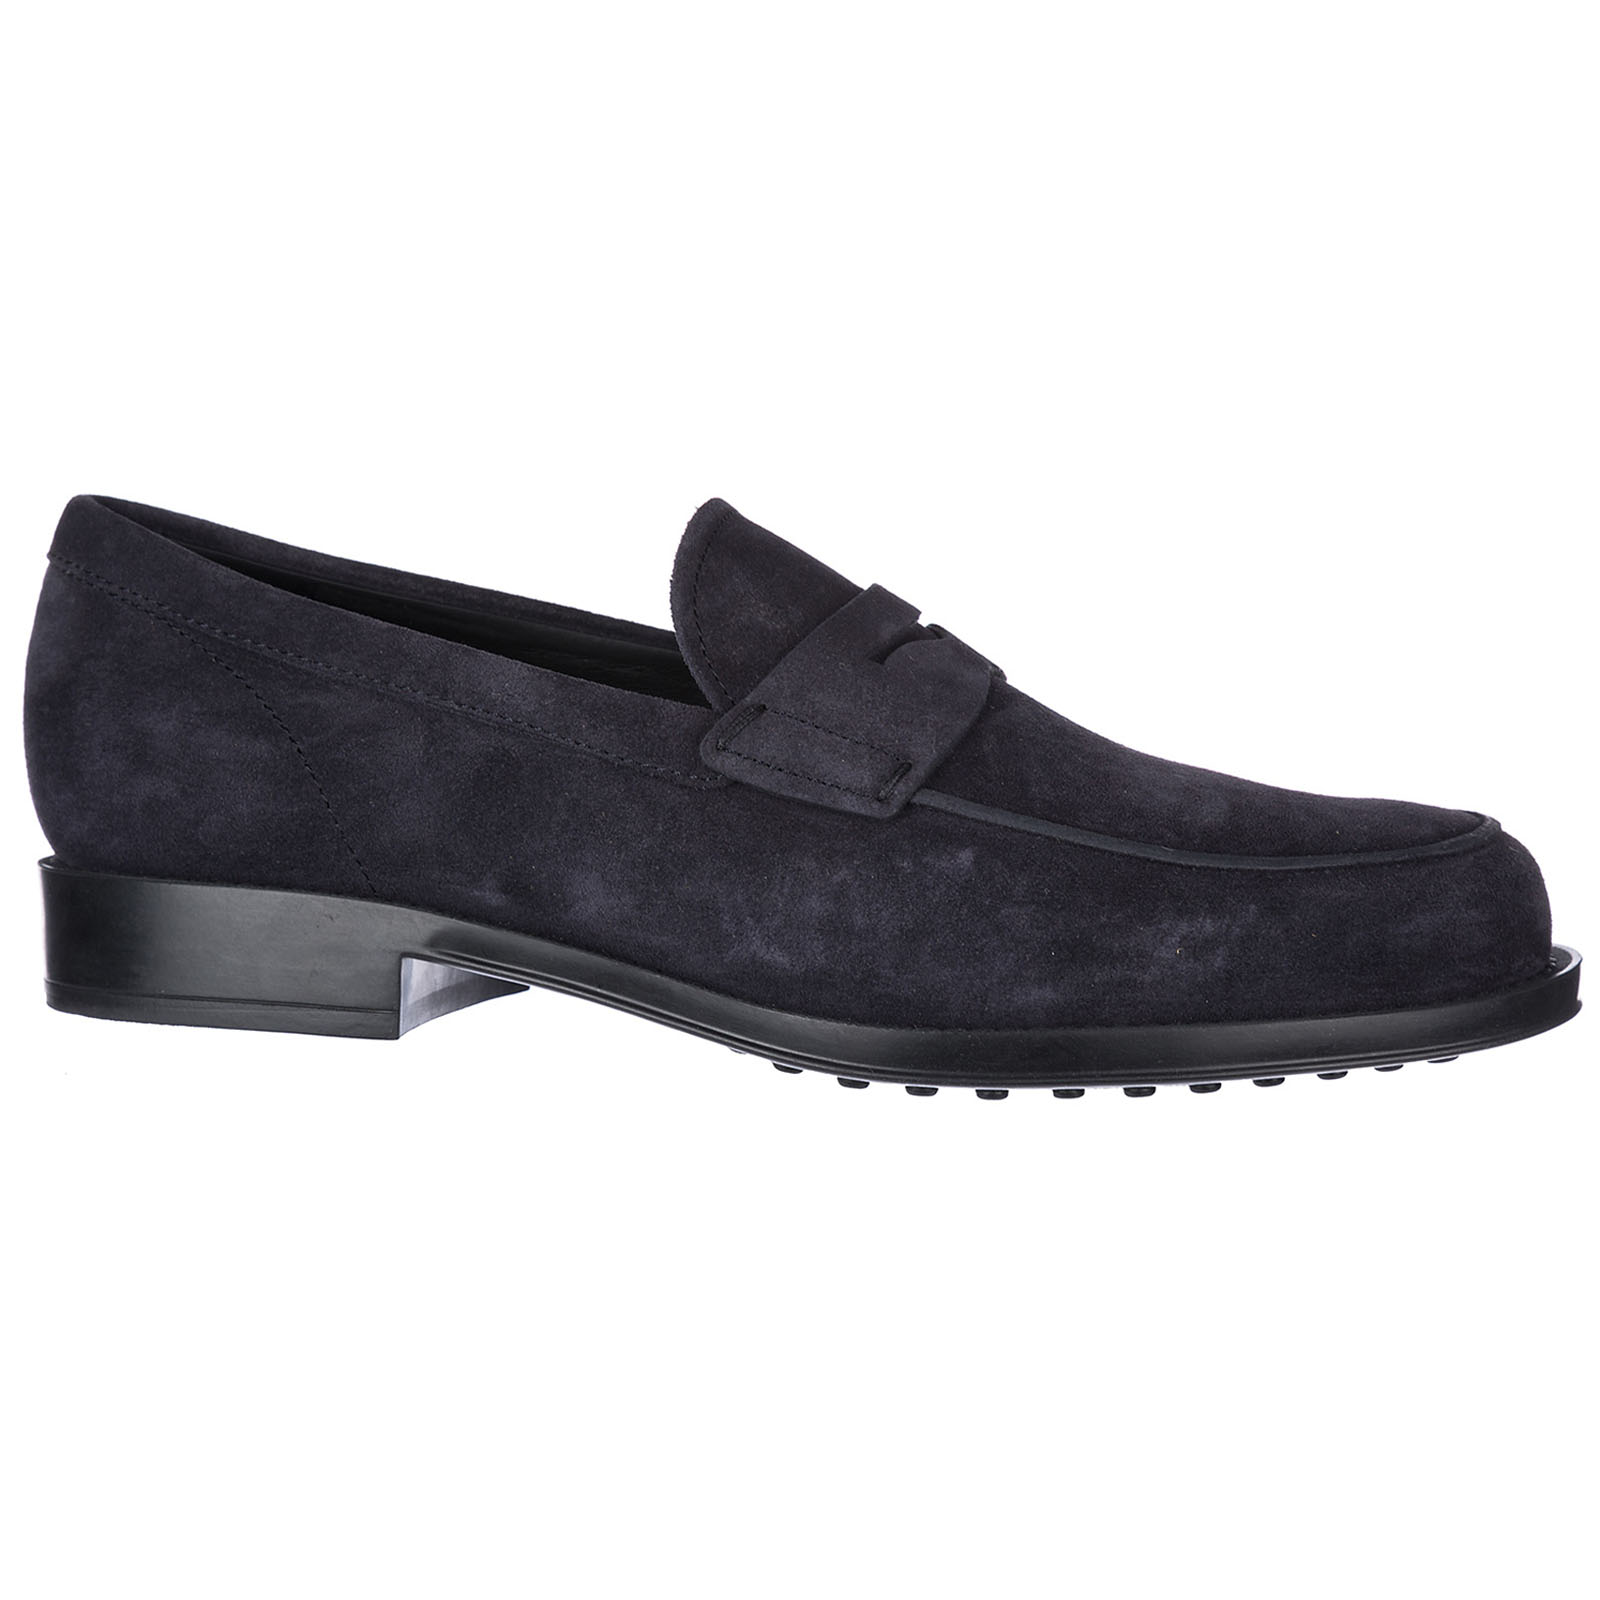 Men's suede loafers moccasins gomma classico